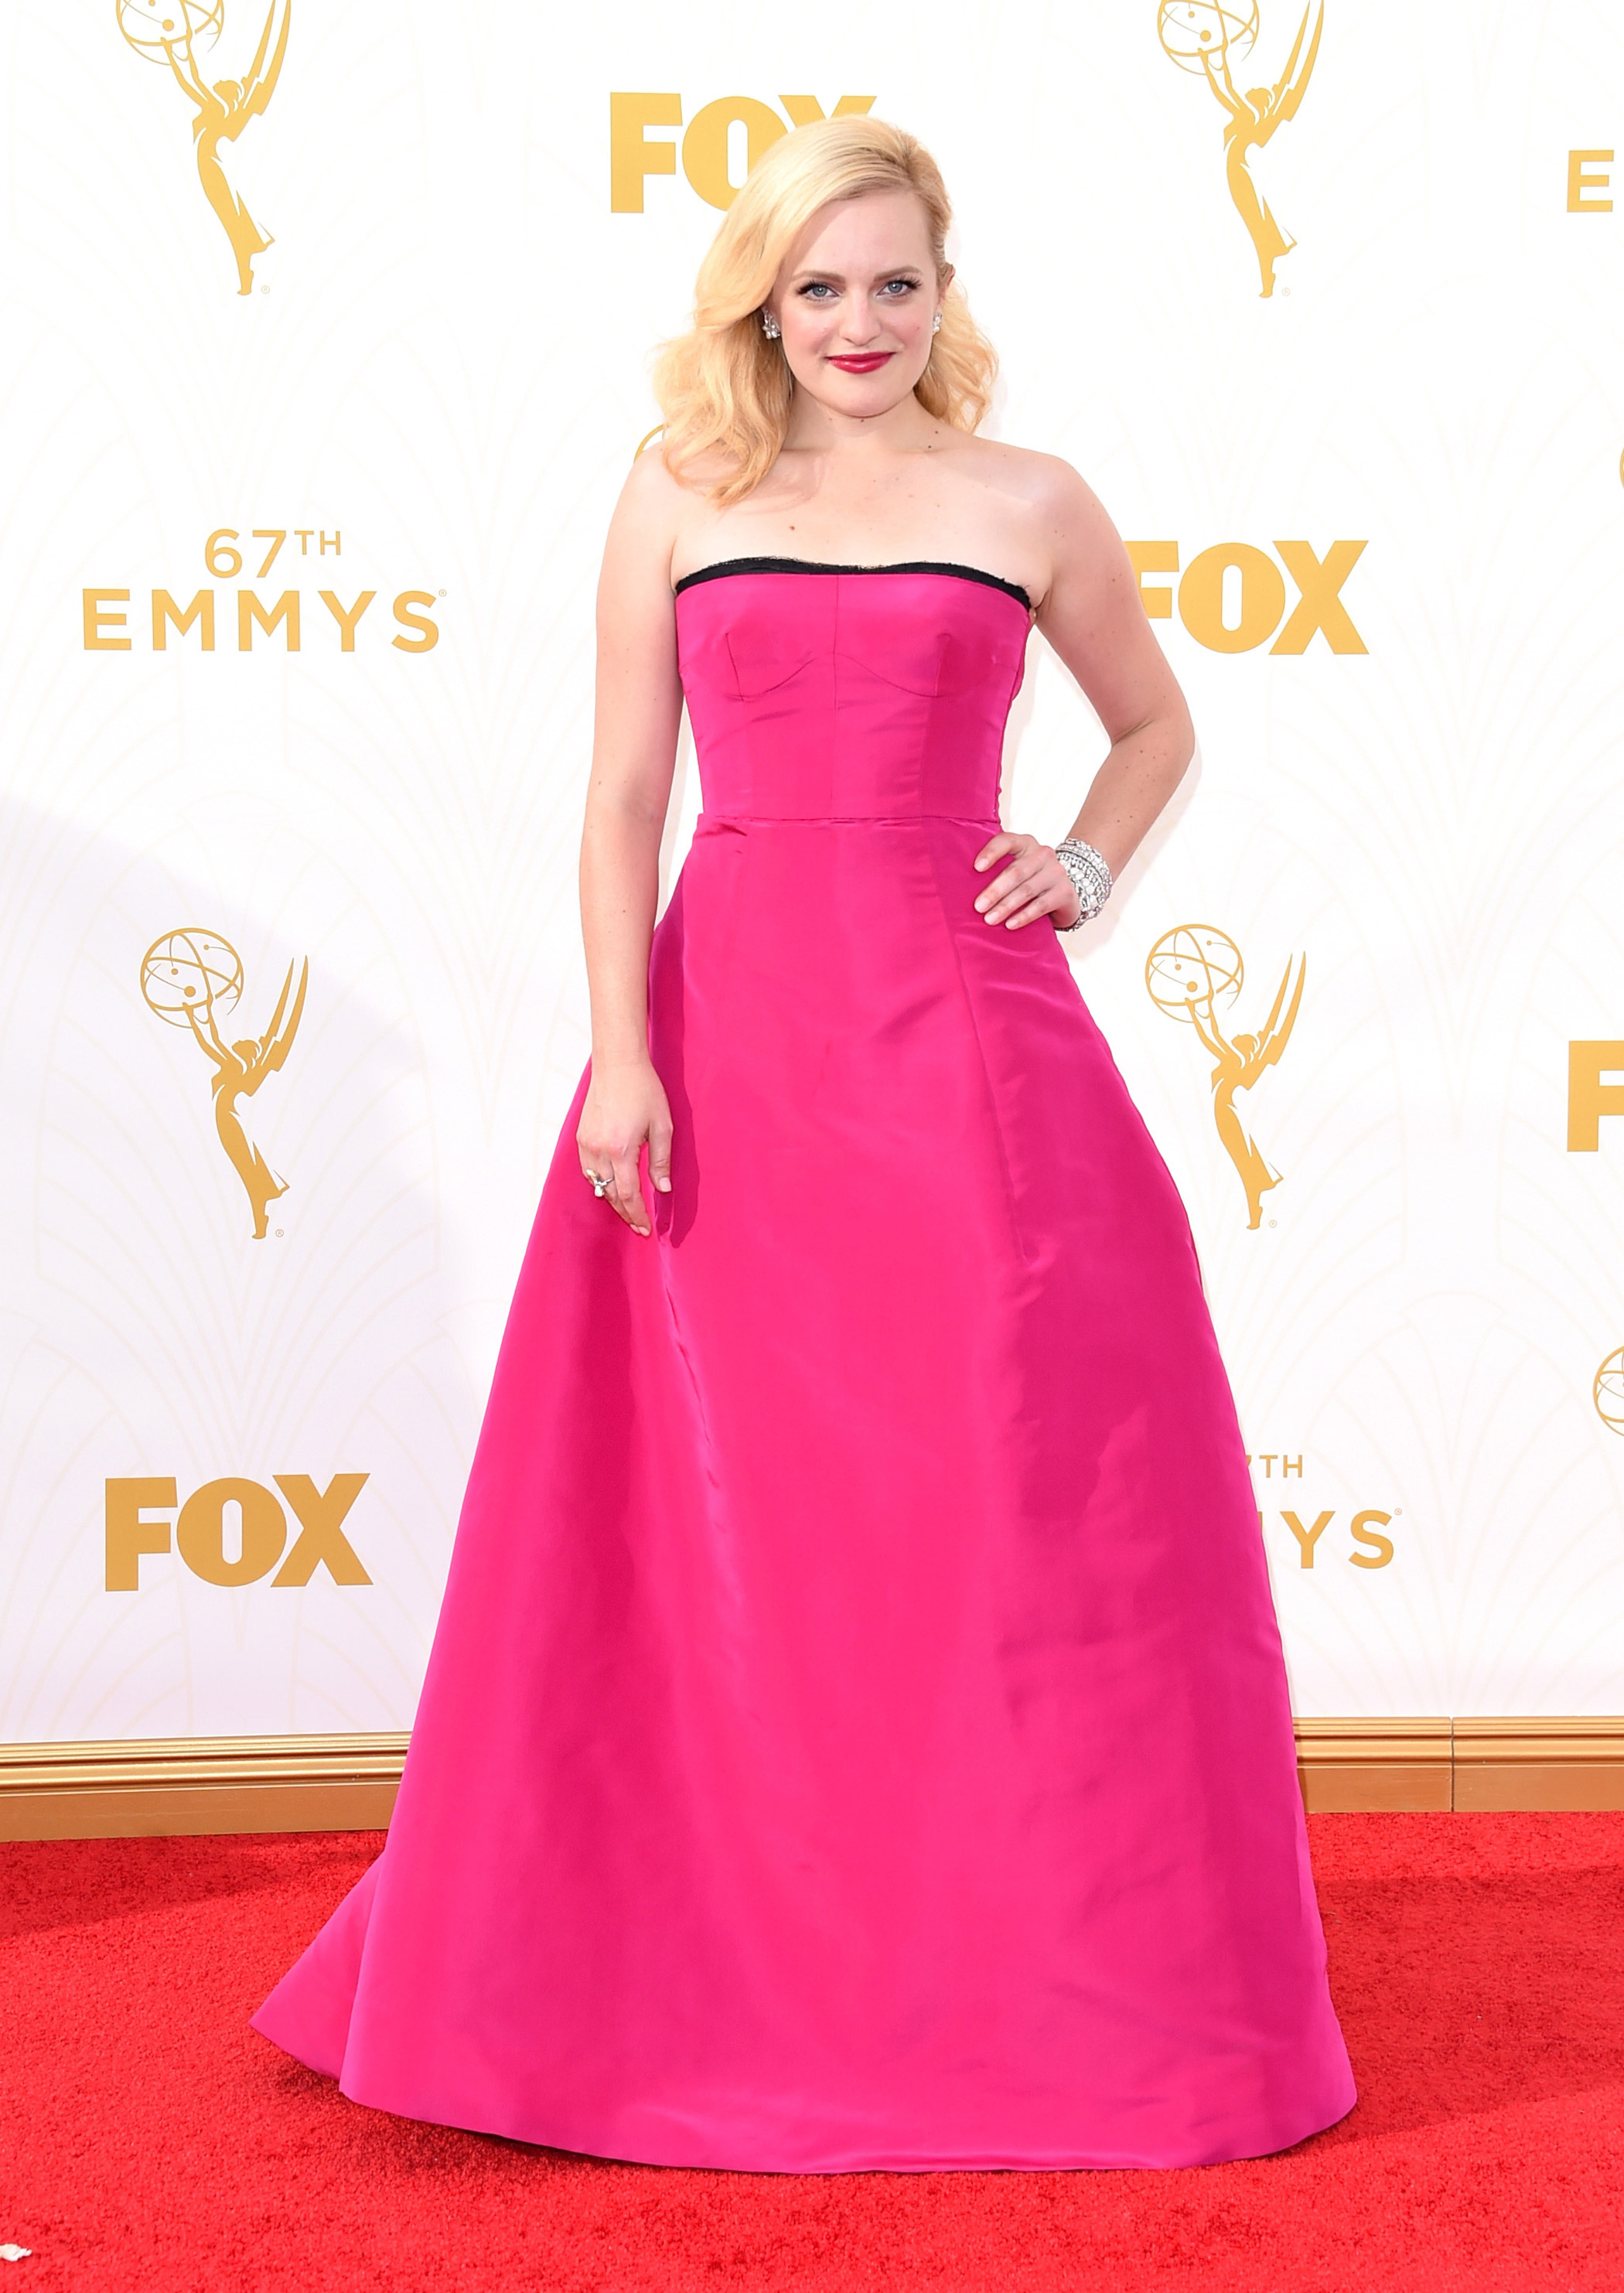 Elisabeth Moss at the 67th Emmy Award on Sept. 20, 2015 in Los Angeles.